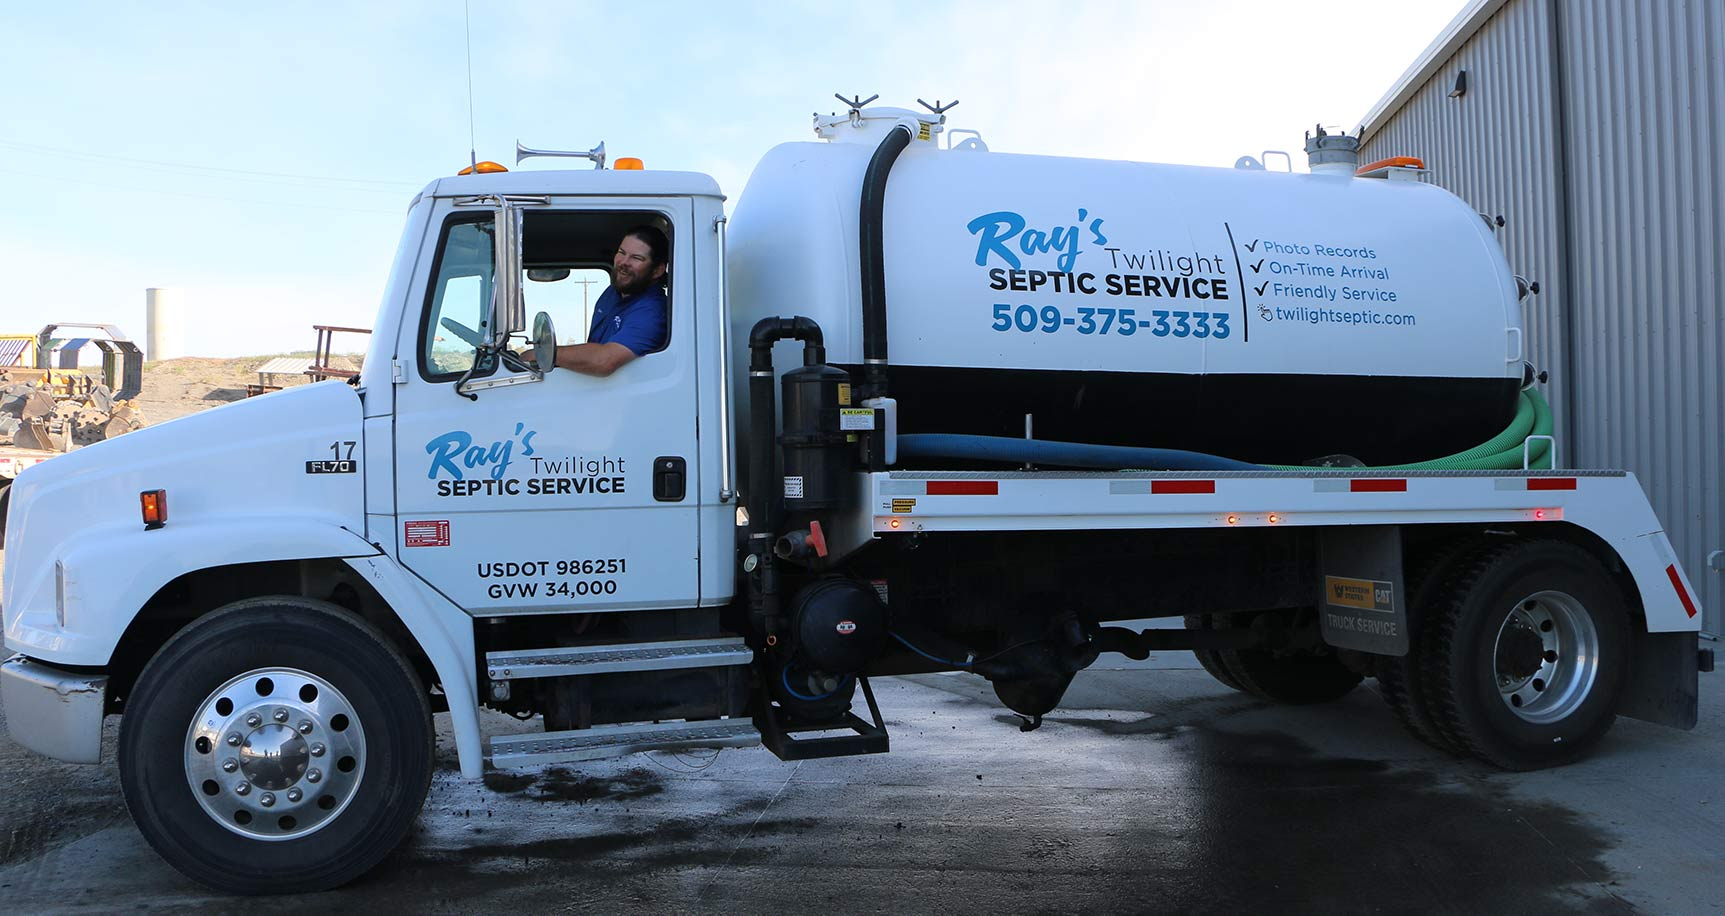 Tri-Cities Septic Service company truck and driver